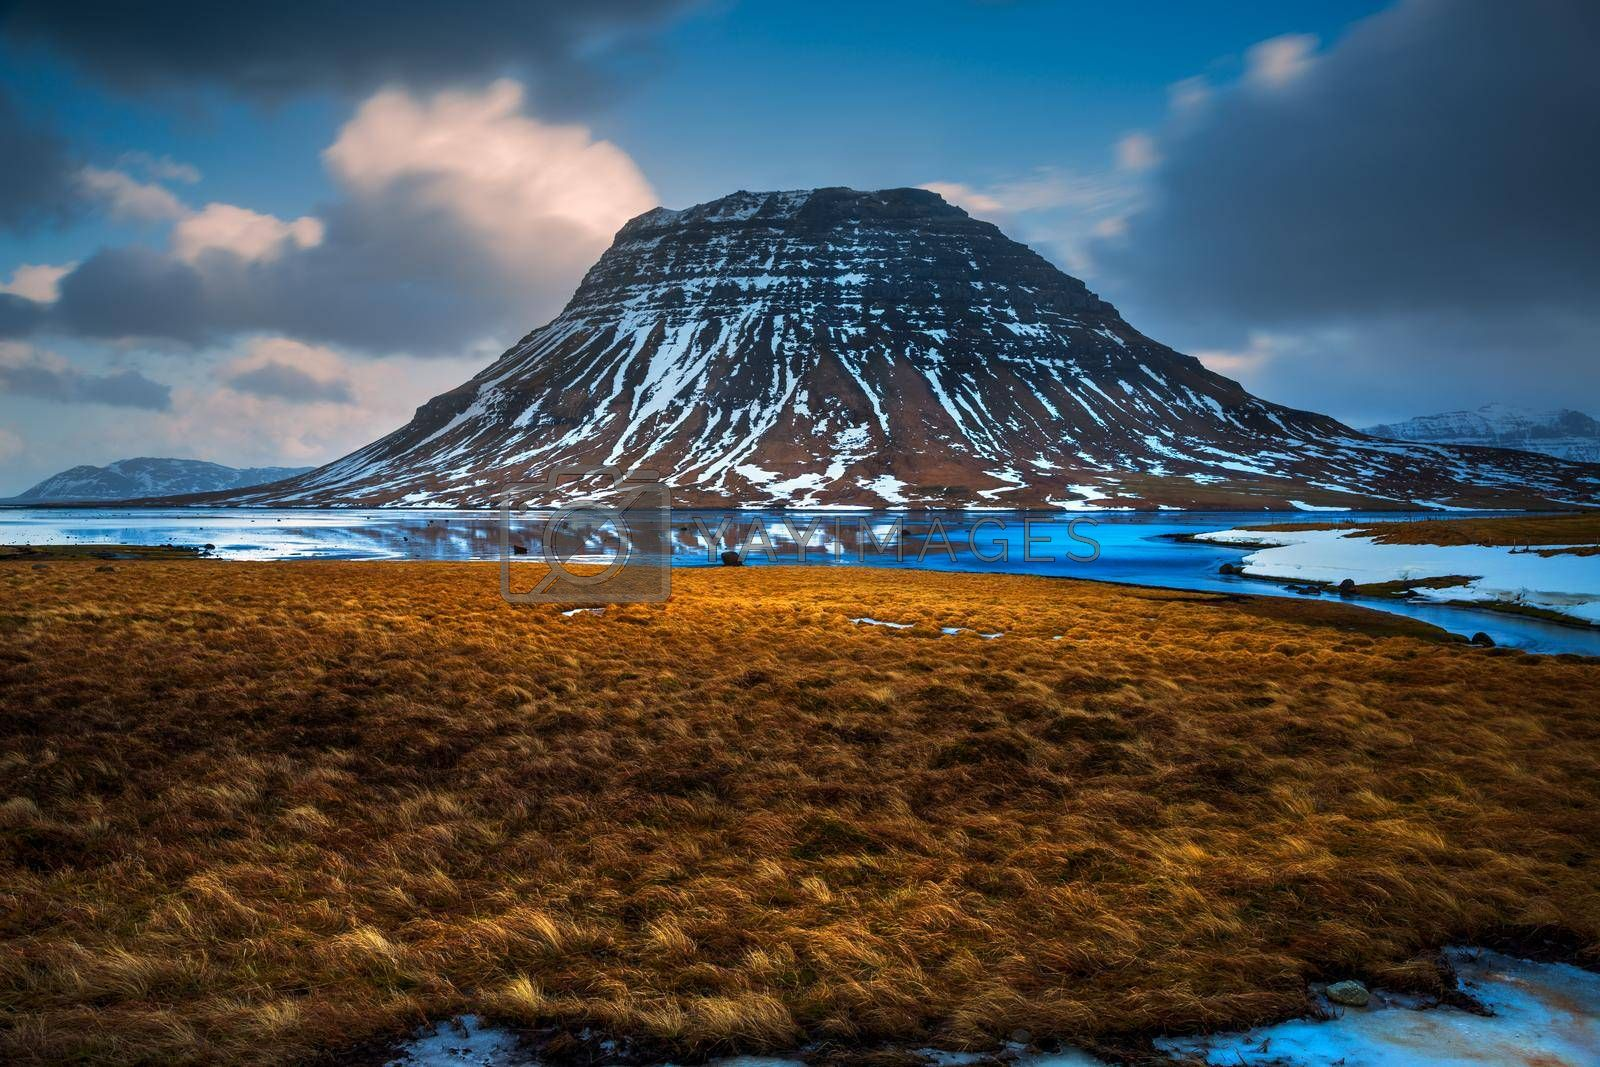 Amazing Winter View on the Snowy High Mountains. Extreme Nature Travel Destination. Picturesque Landscape of Icelandic Lands. Iceland.